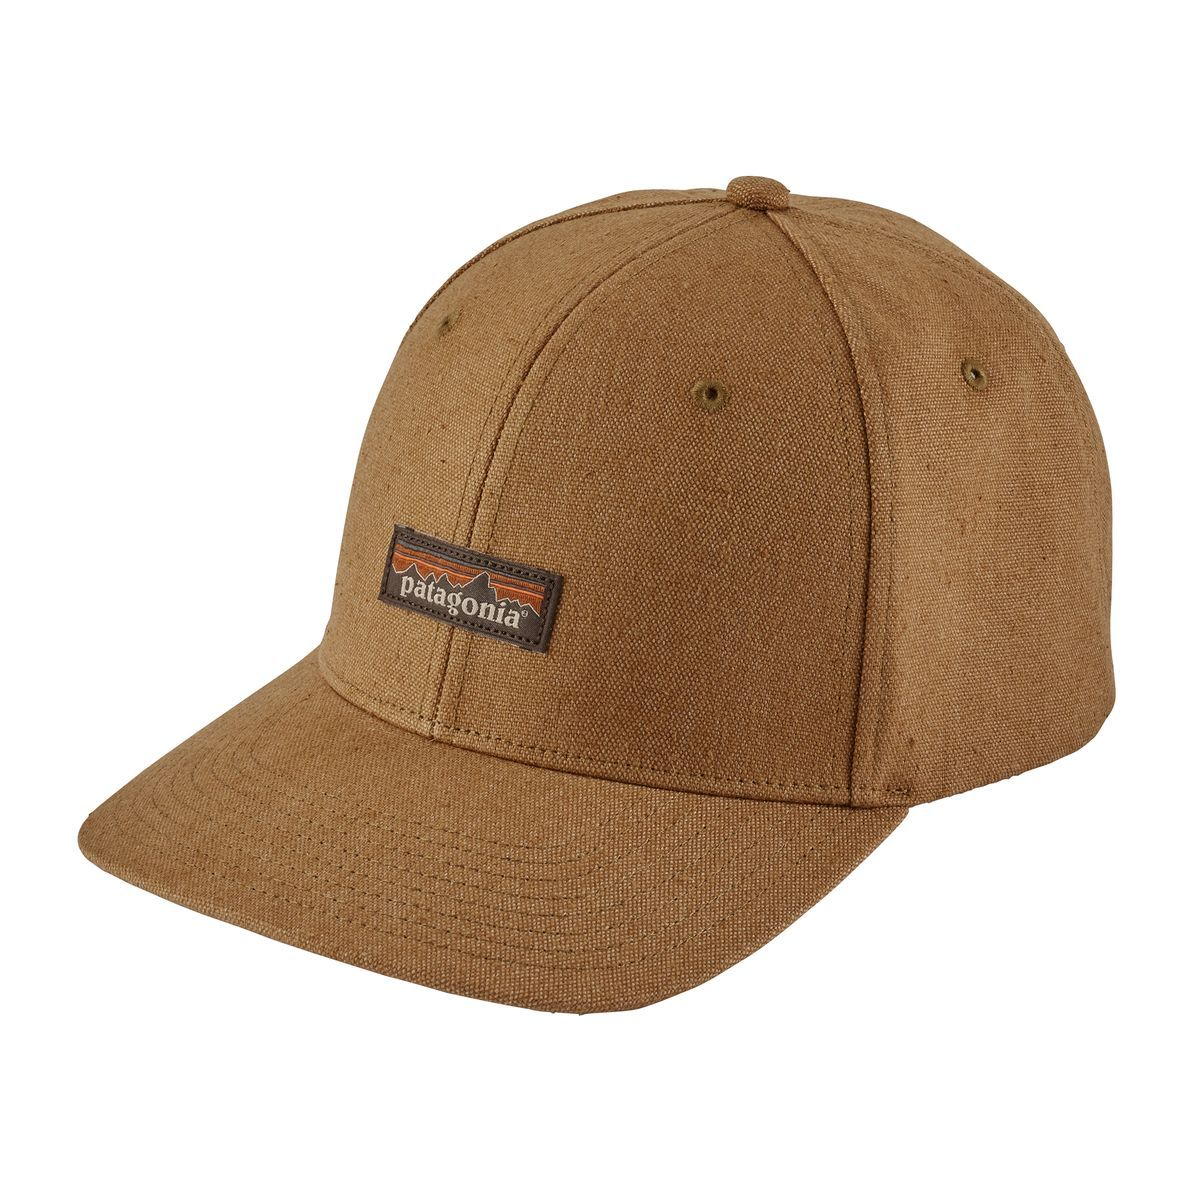 Patagonia Tin Shed Work Hat: Tin Shed, Outdoor Hats, Hats